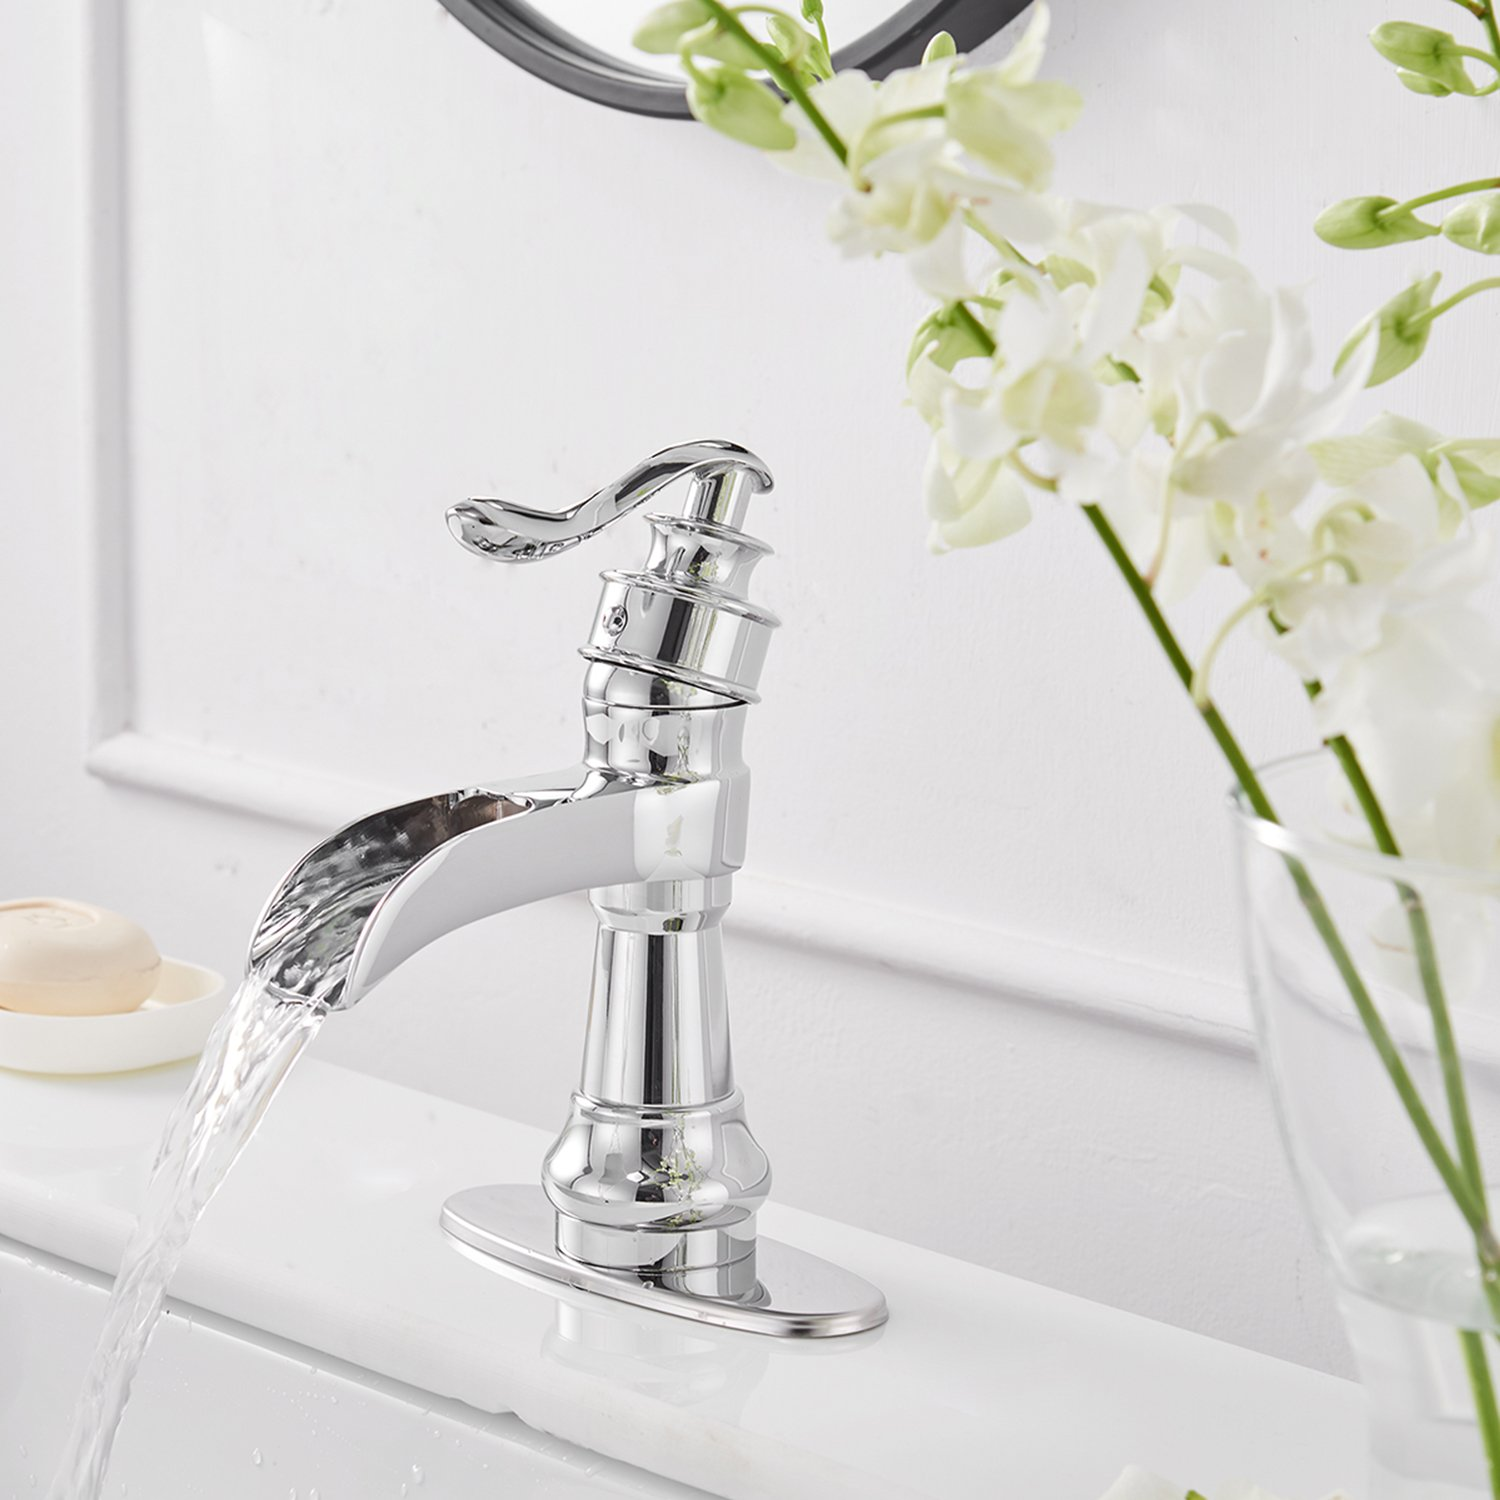 Greenspring ORB Waterfall Spout Single Handle Commercial One Hole Bathroom Sink Faucet Lavatory Deck Mount,Oil Rubbed Bronze